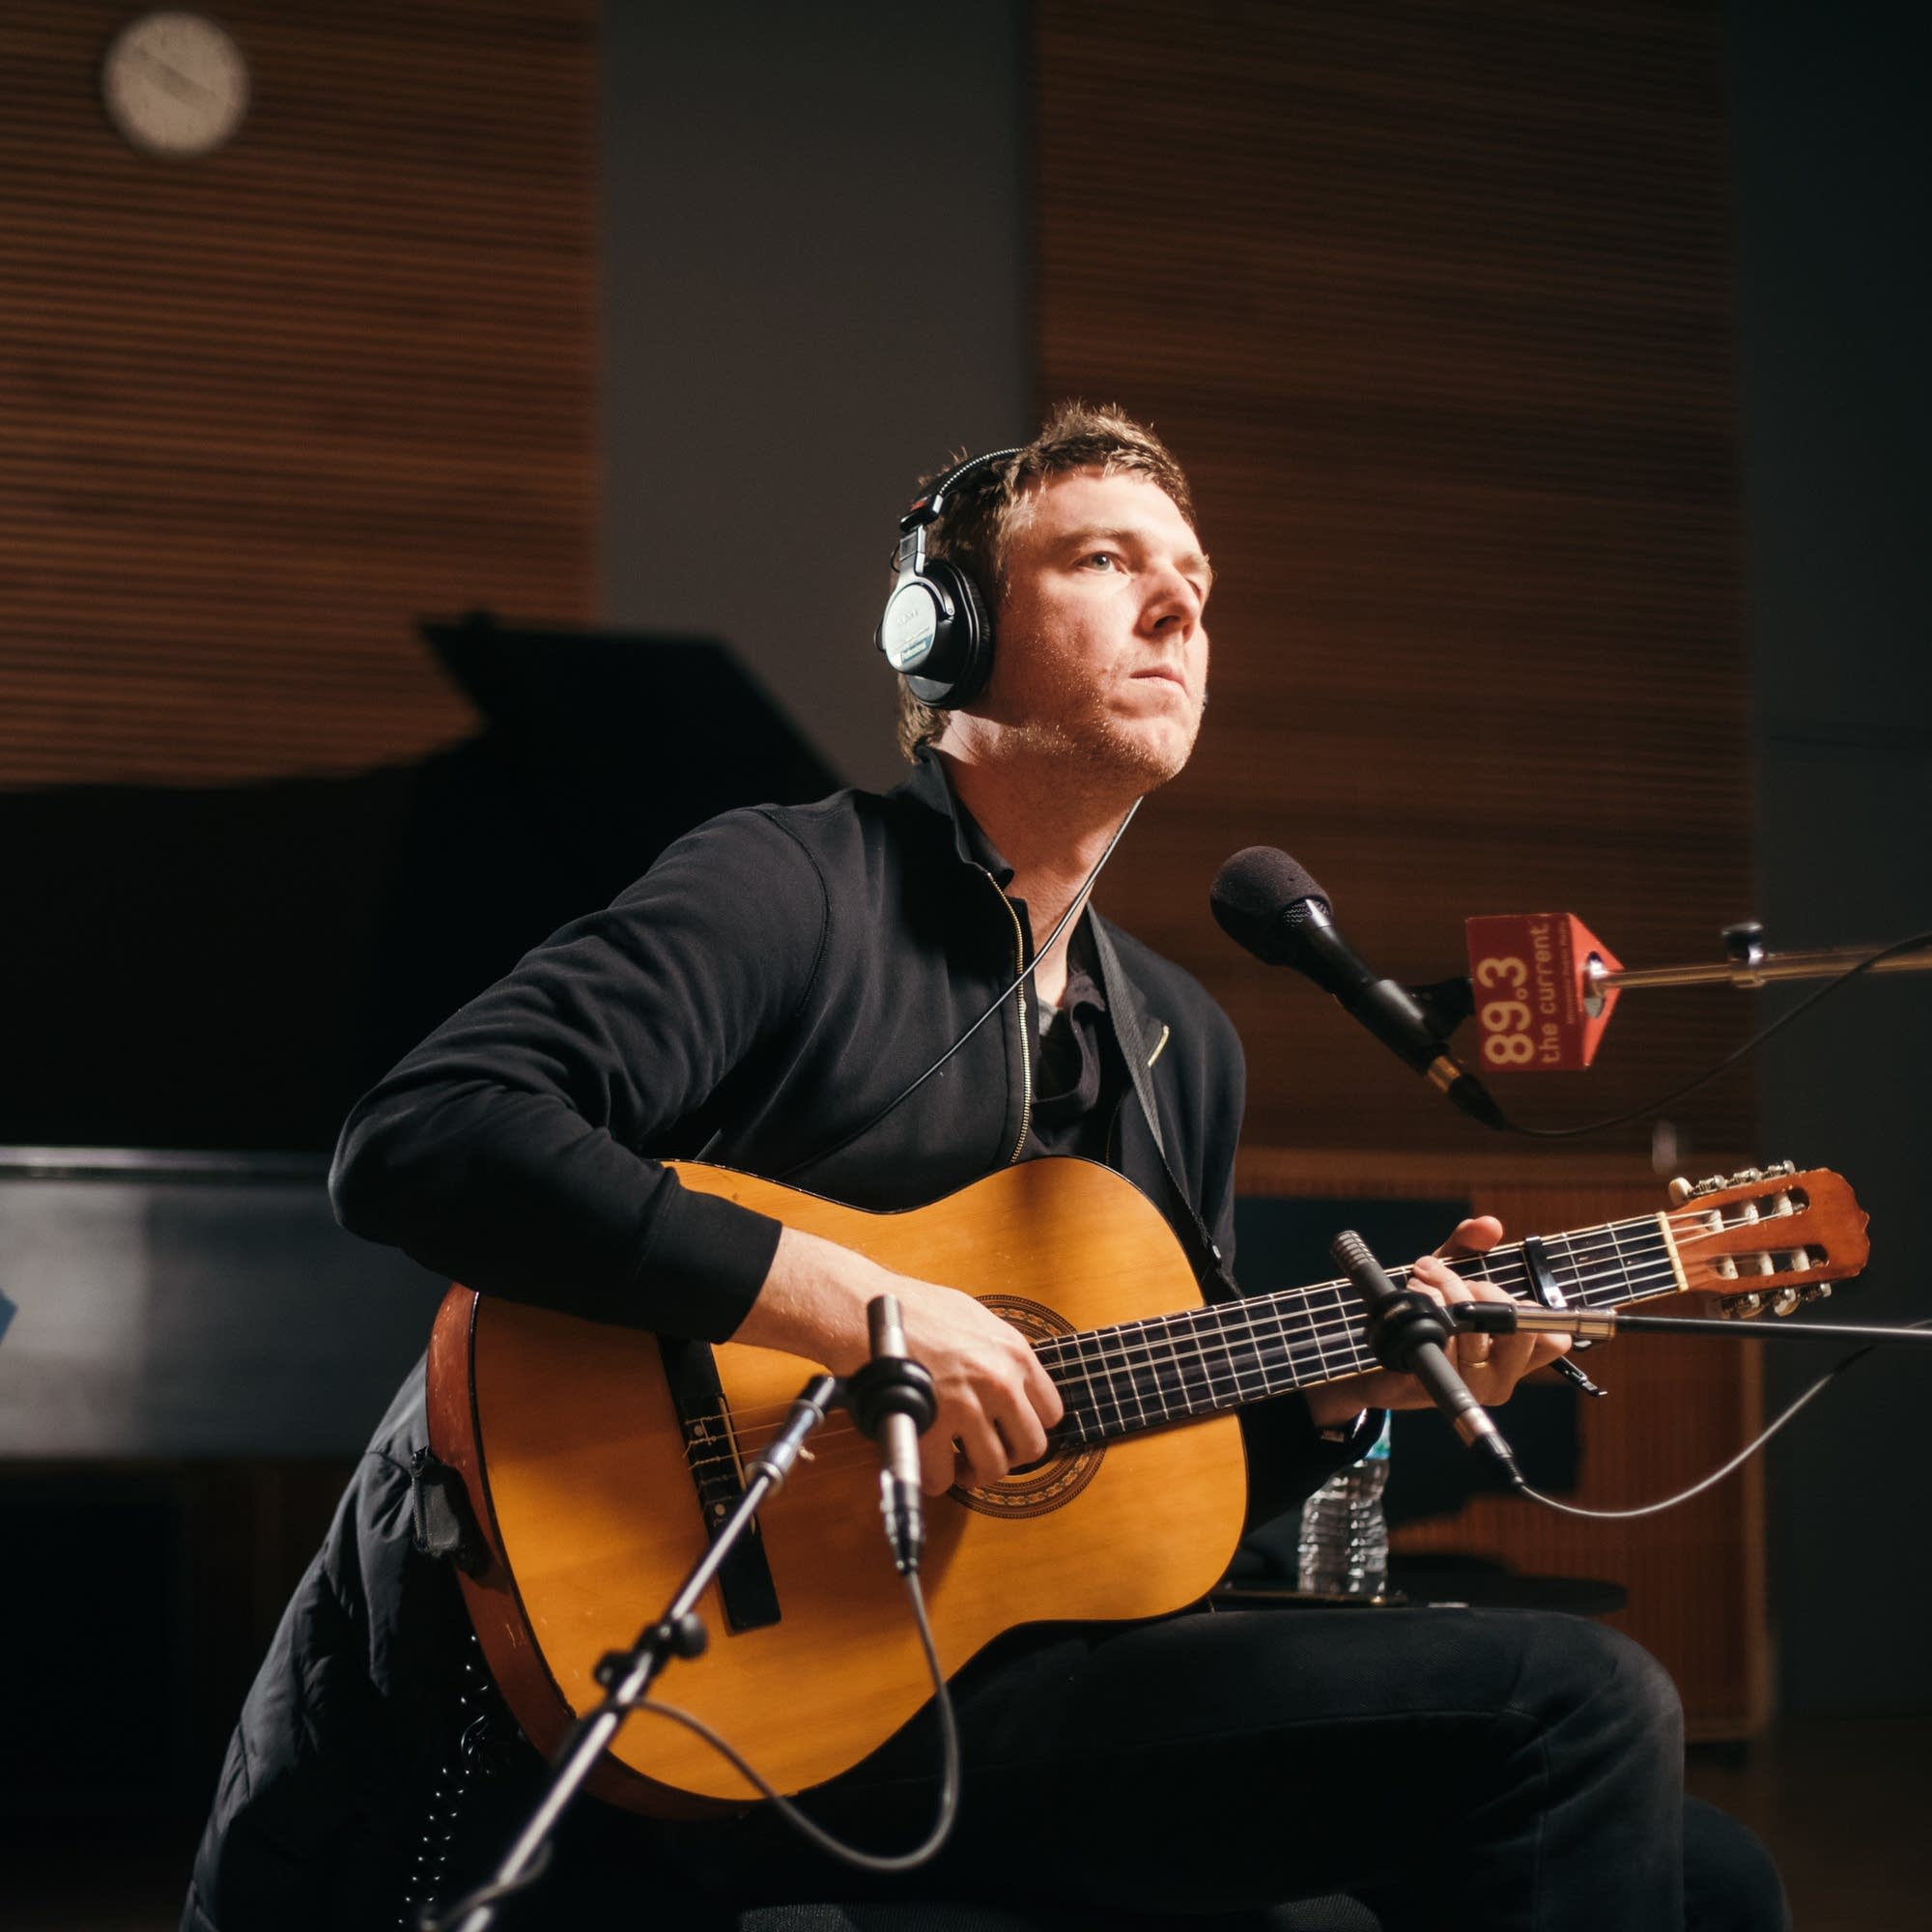 Hamilton Leithauser performs a solo acoustic set